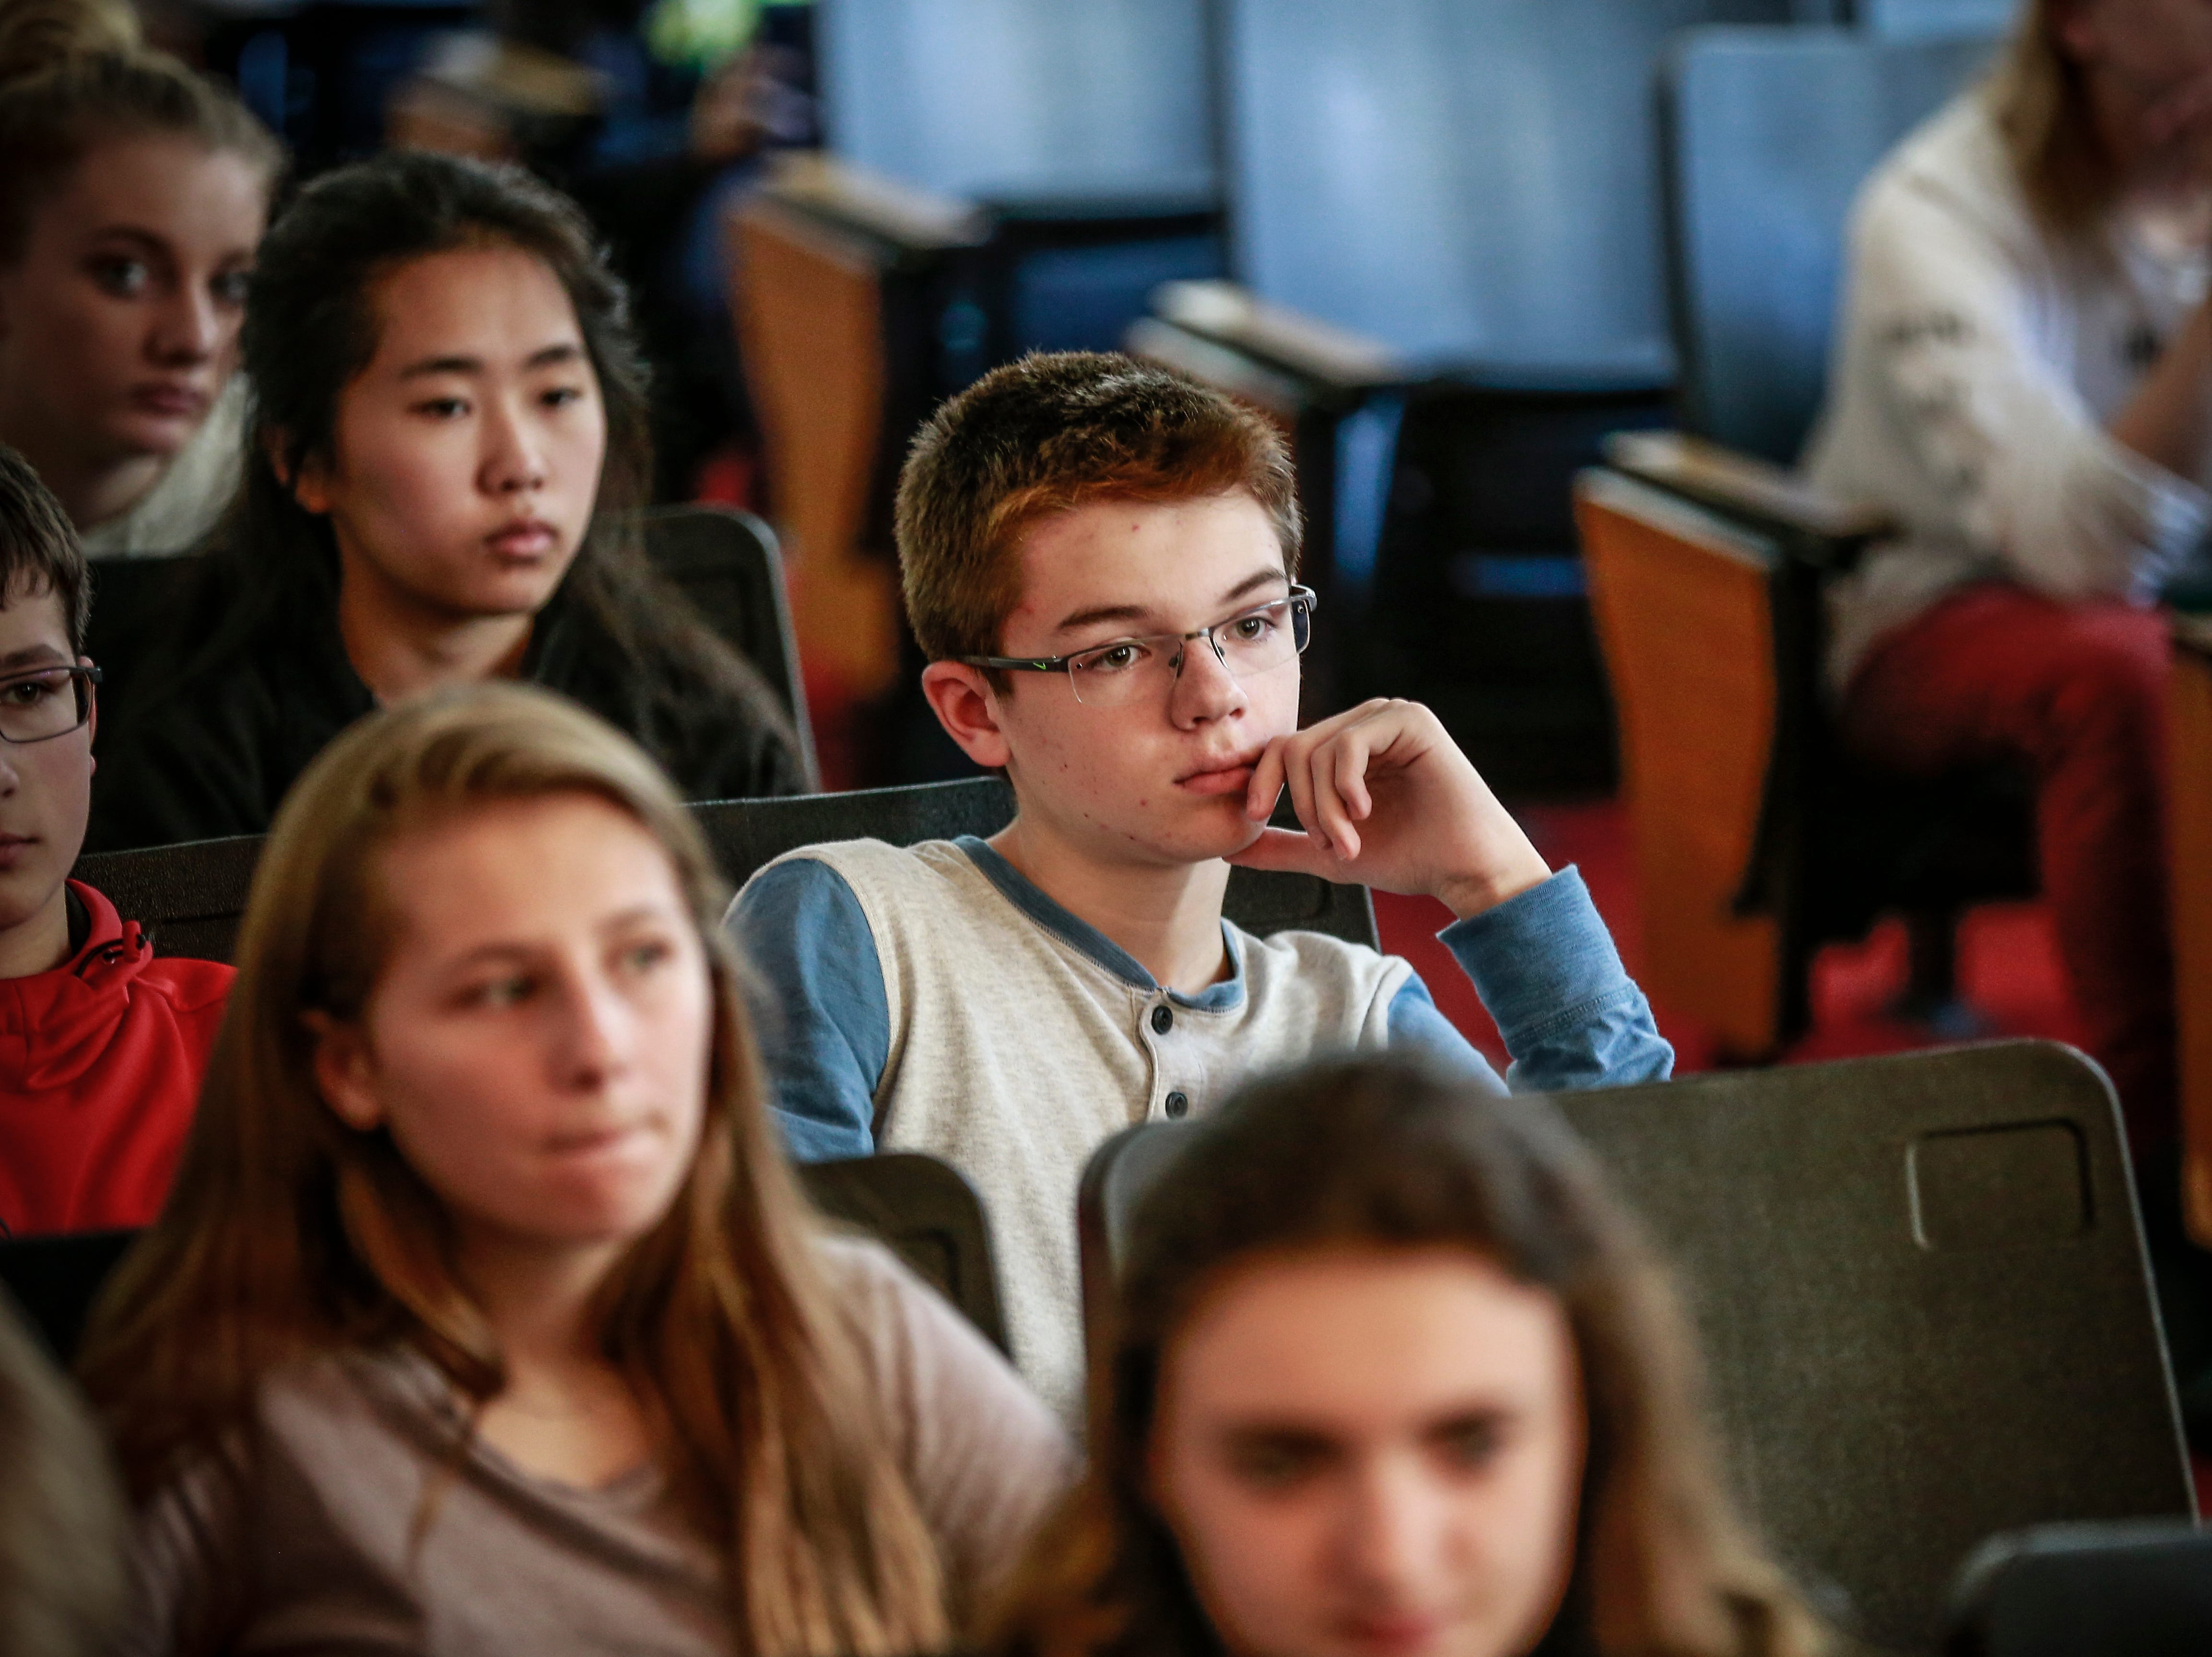 Students listen during the 9th grade Action Civics Political Forum Wednesday, Oct. 17, 2018, at D.C. Everest Junior High School auditorium in Weston, Wis. T'xer Zhon Kha/USA TODAY NETWORK-Wisconsin